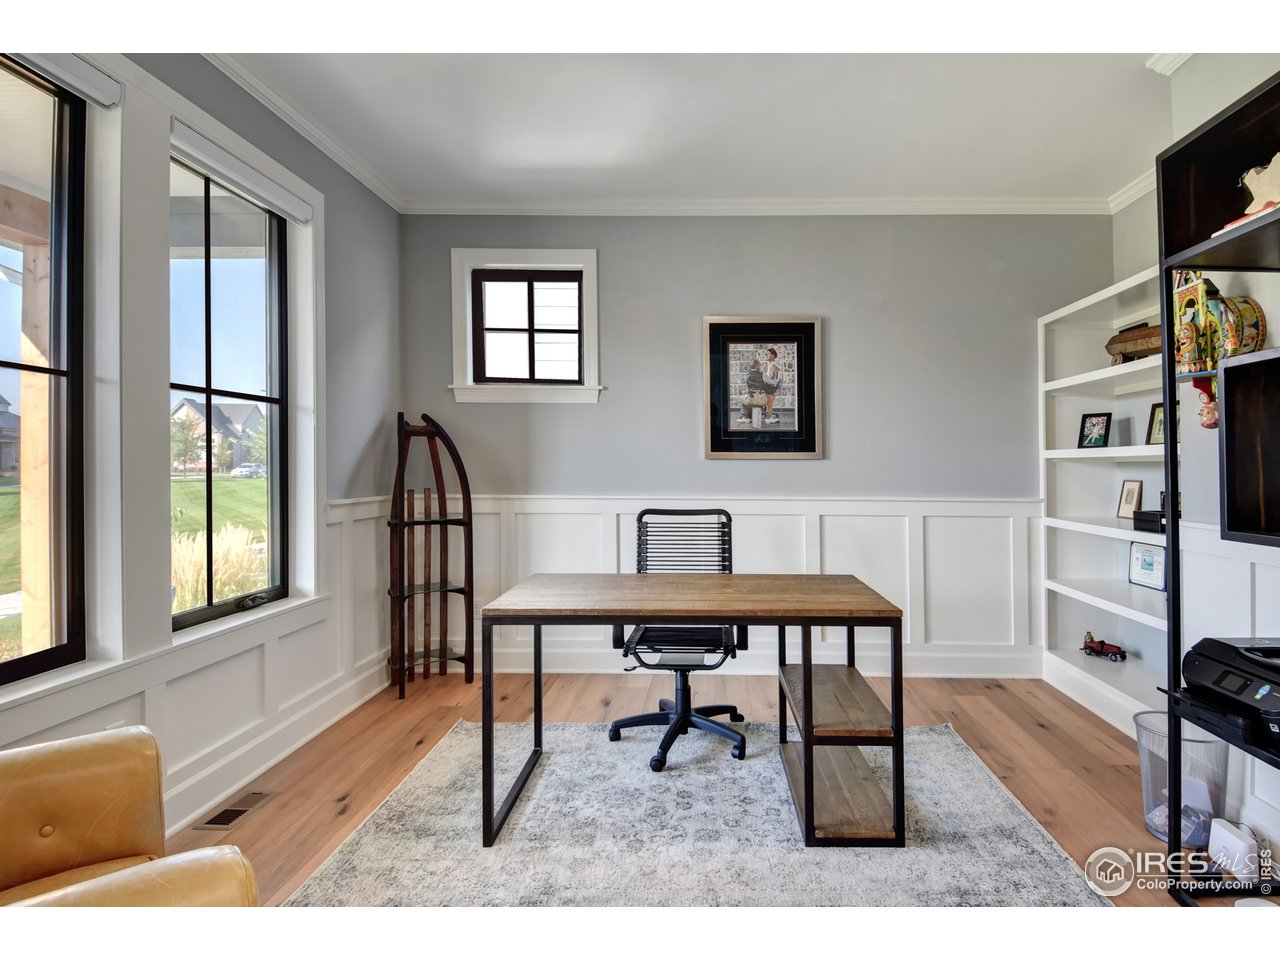 Main Flr Office w/ Wainscoting & Glass Barn Slider